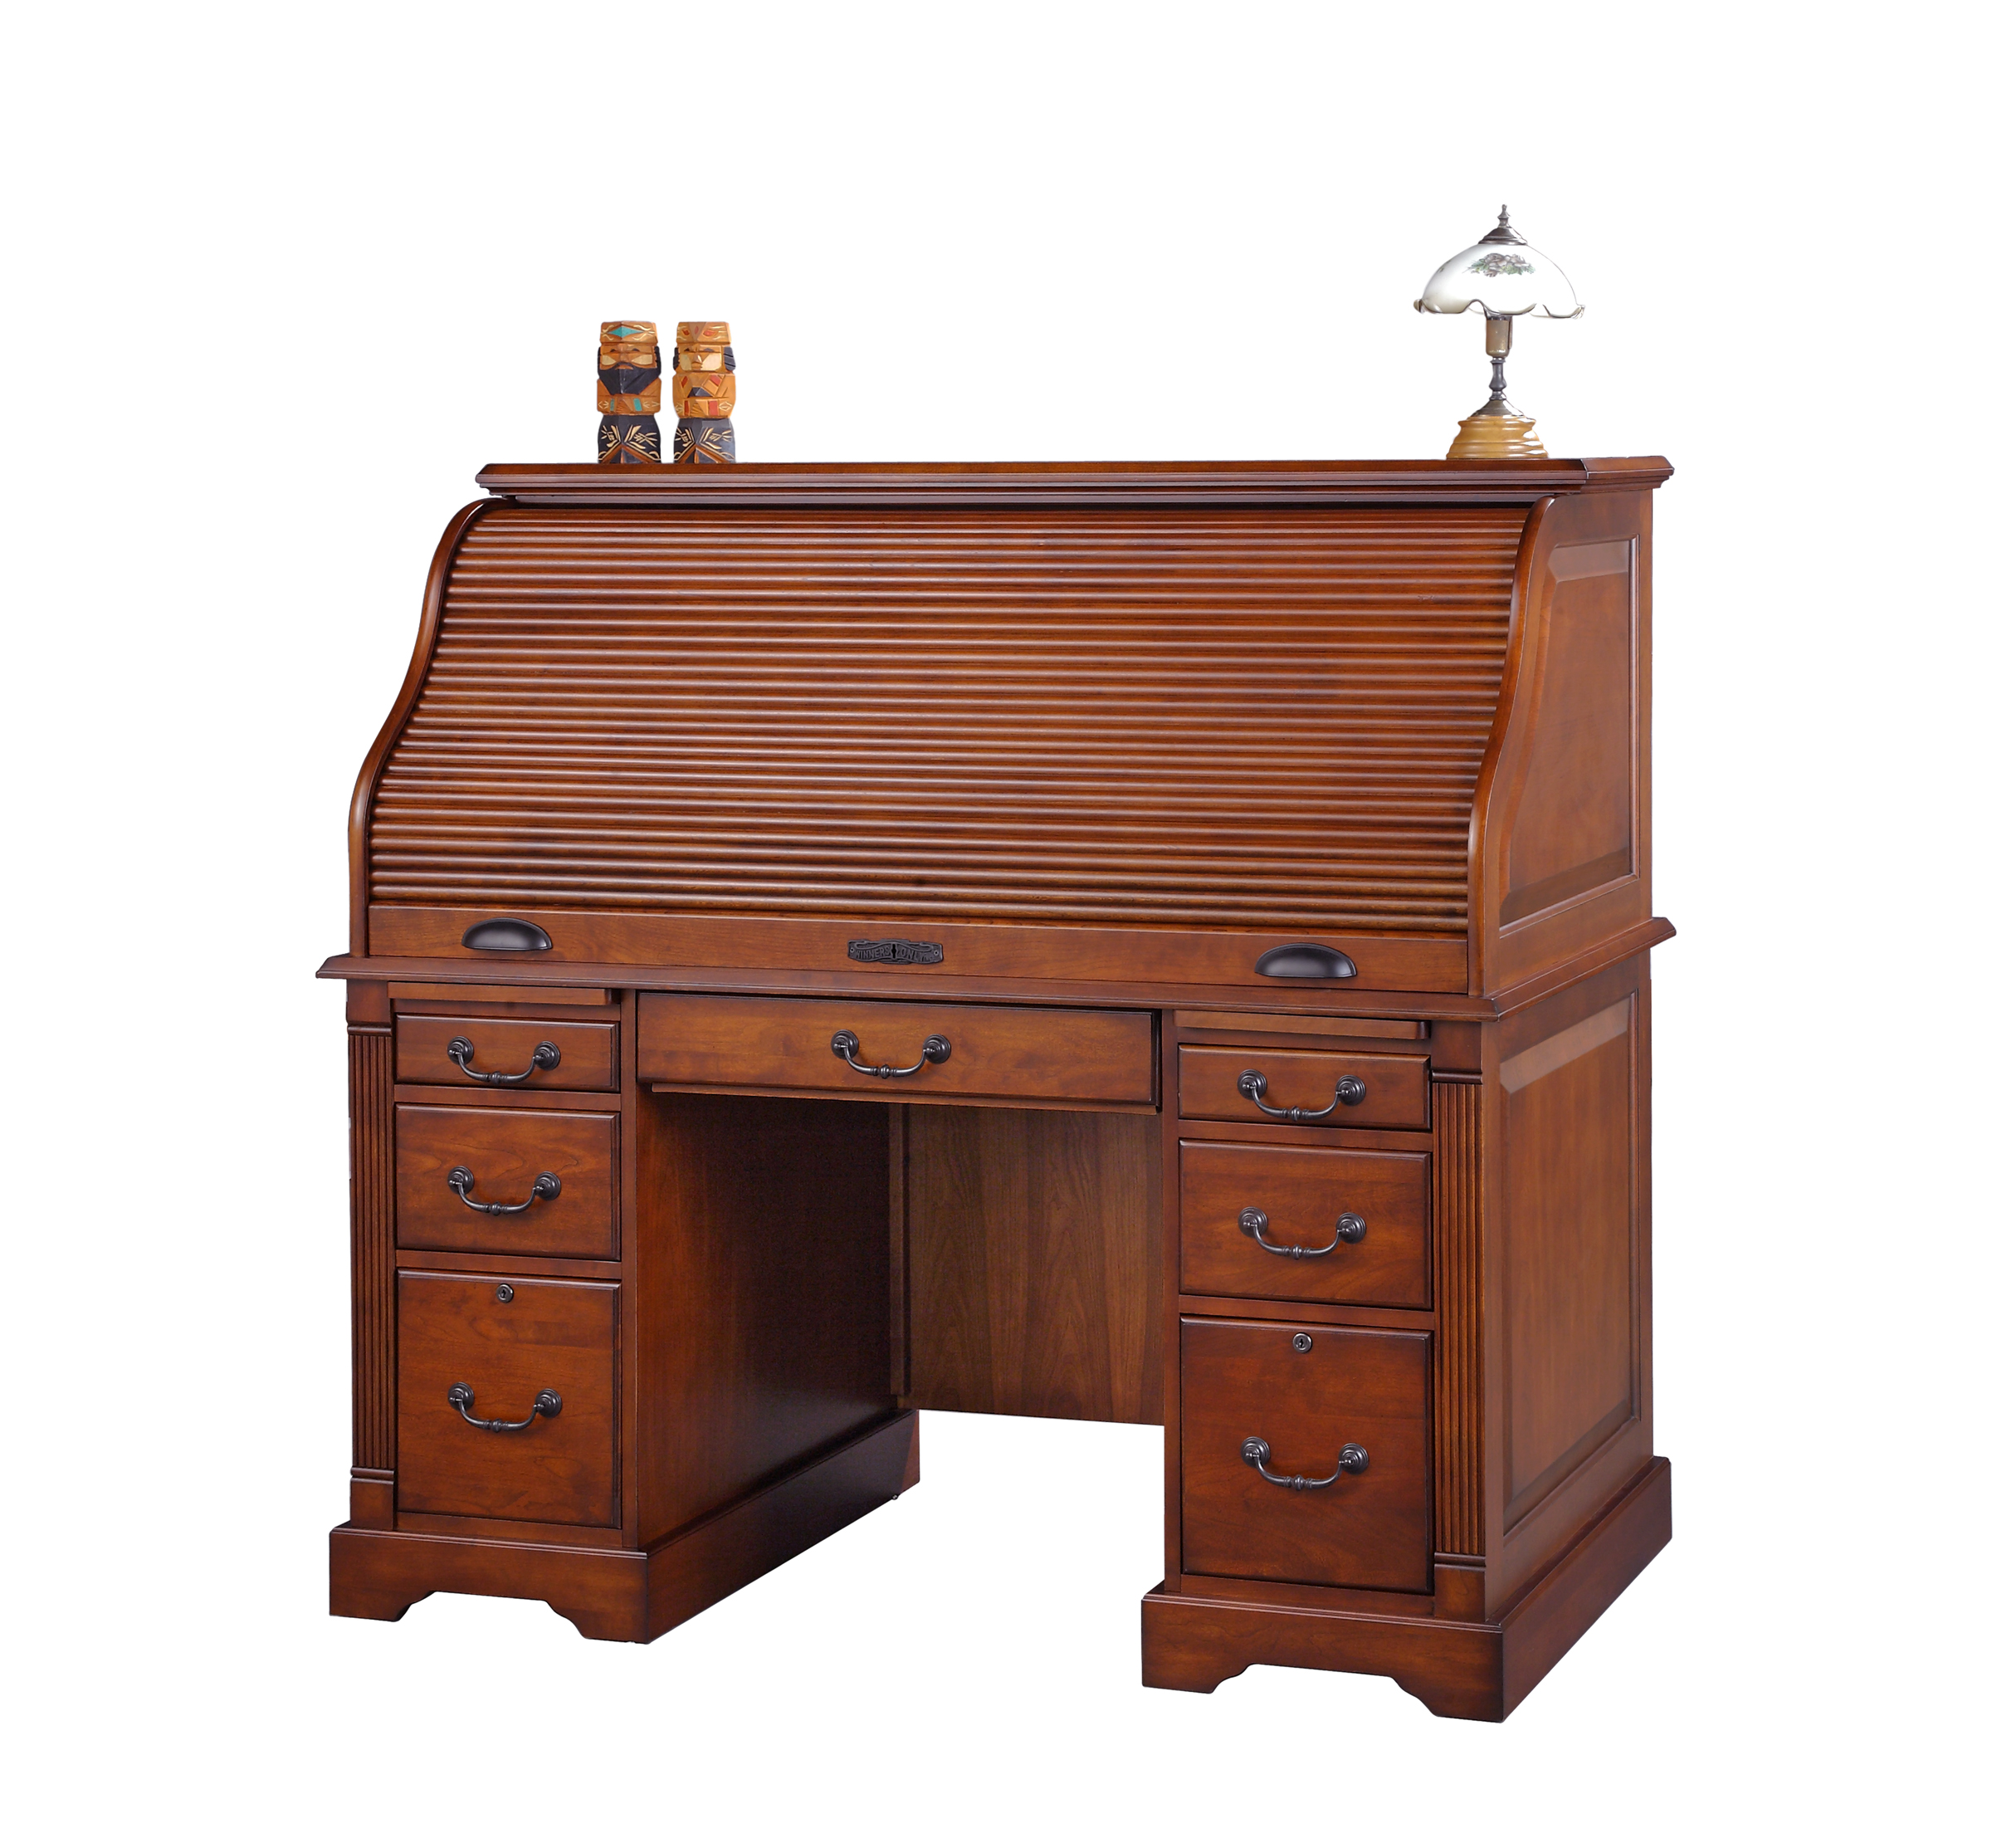 k157r roll top desk from winners only furniture - Winners Only Furniture